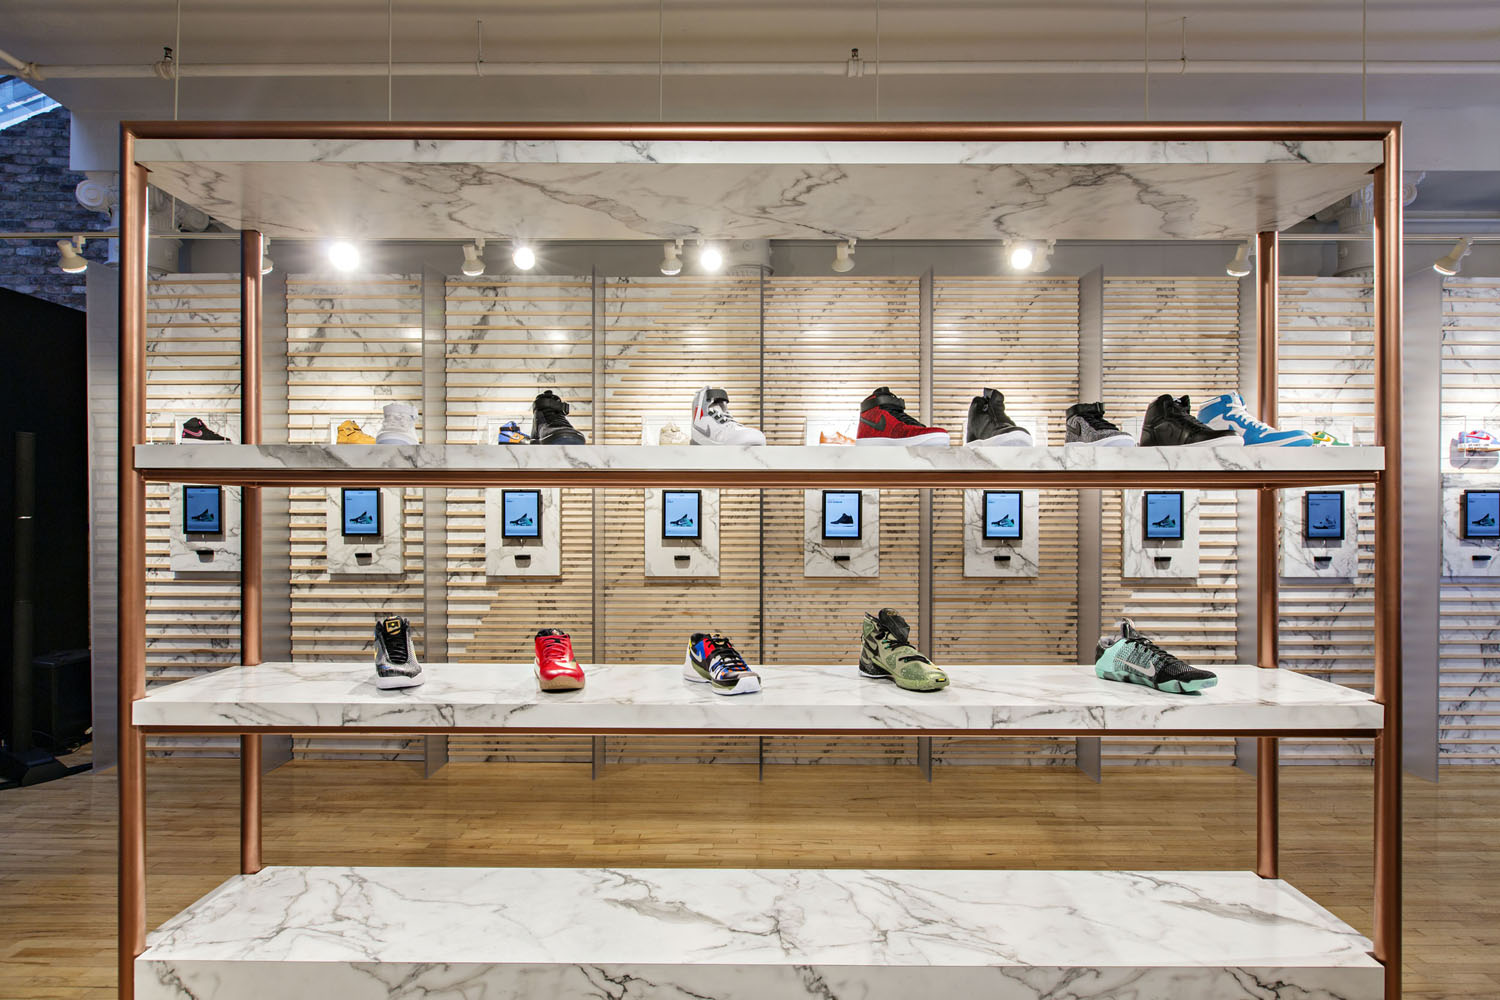 Appointment-Only All-Star Sneaker Store